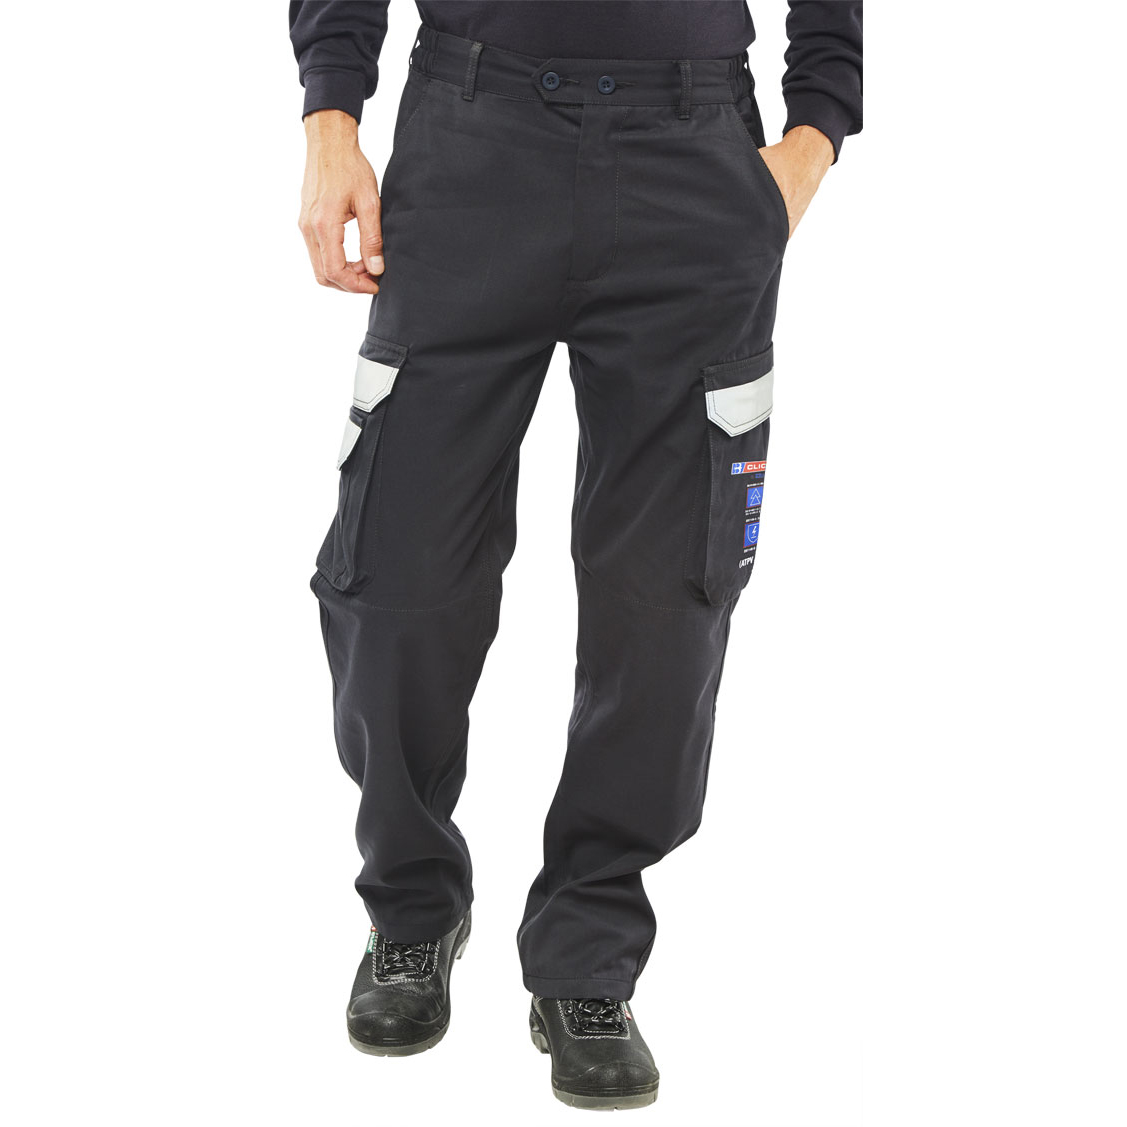 Fire Retardant / Flame Resistant Click Arc Flash Trousers Fire Retardant Navy Blue 40-Tall Ref CARC4N40T *Up to 3 Day Leadtime*